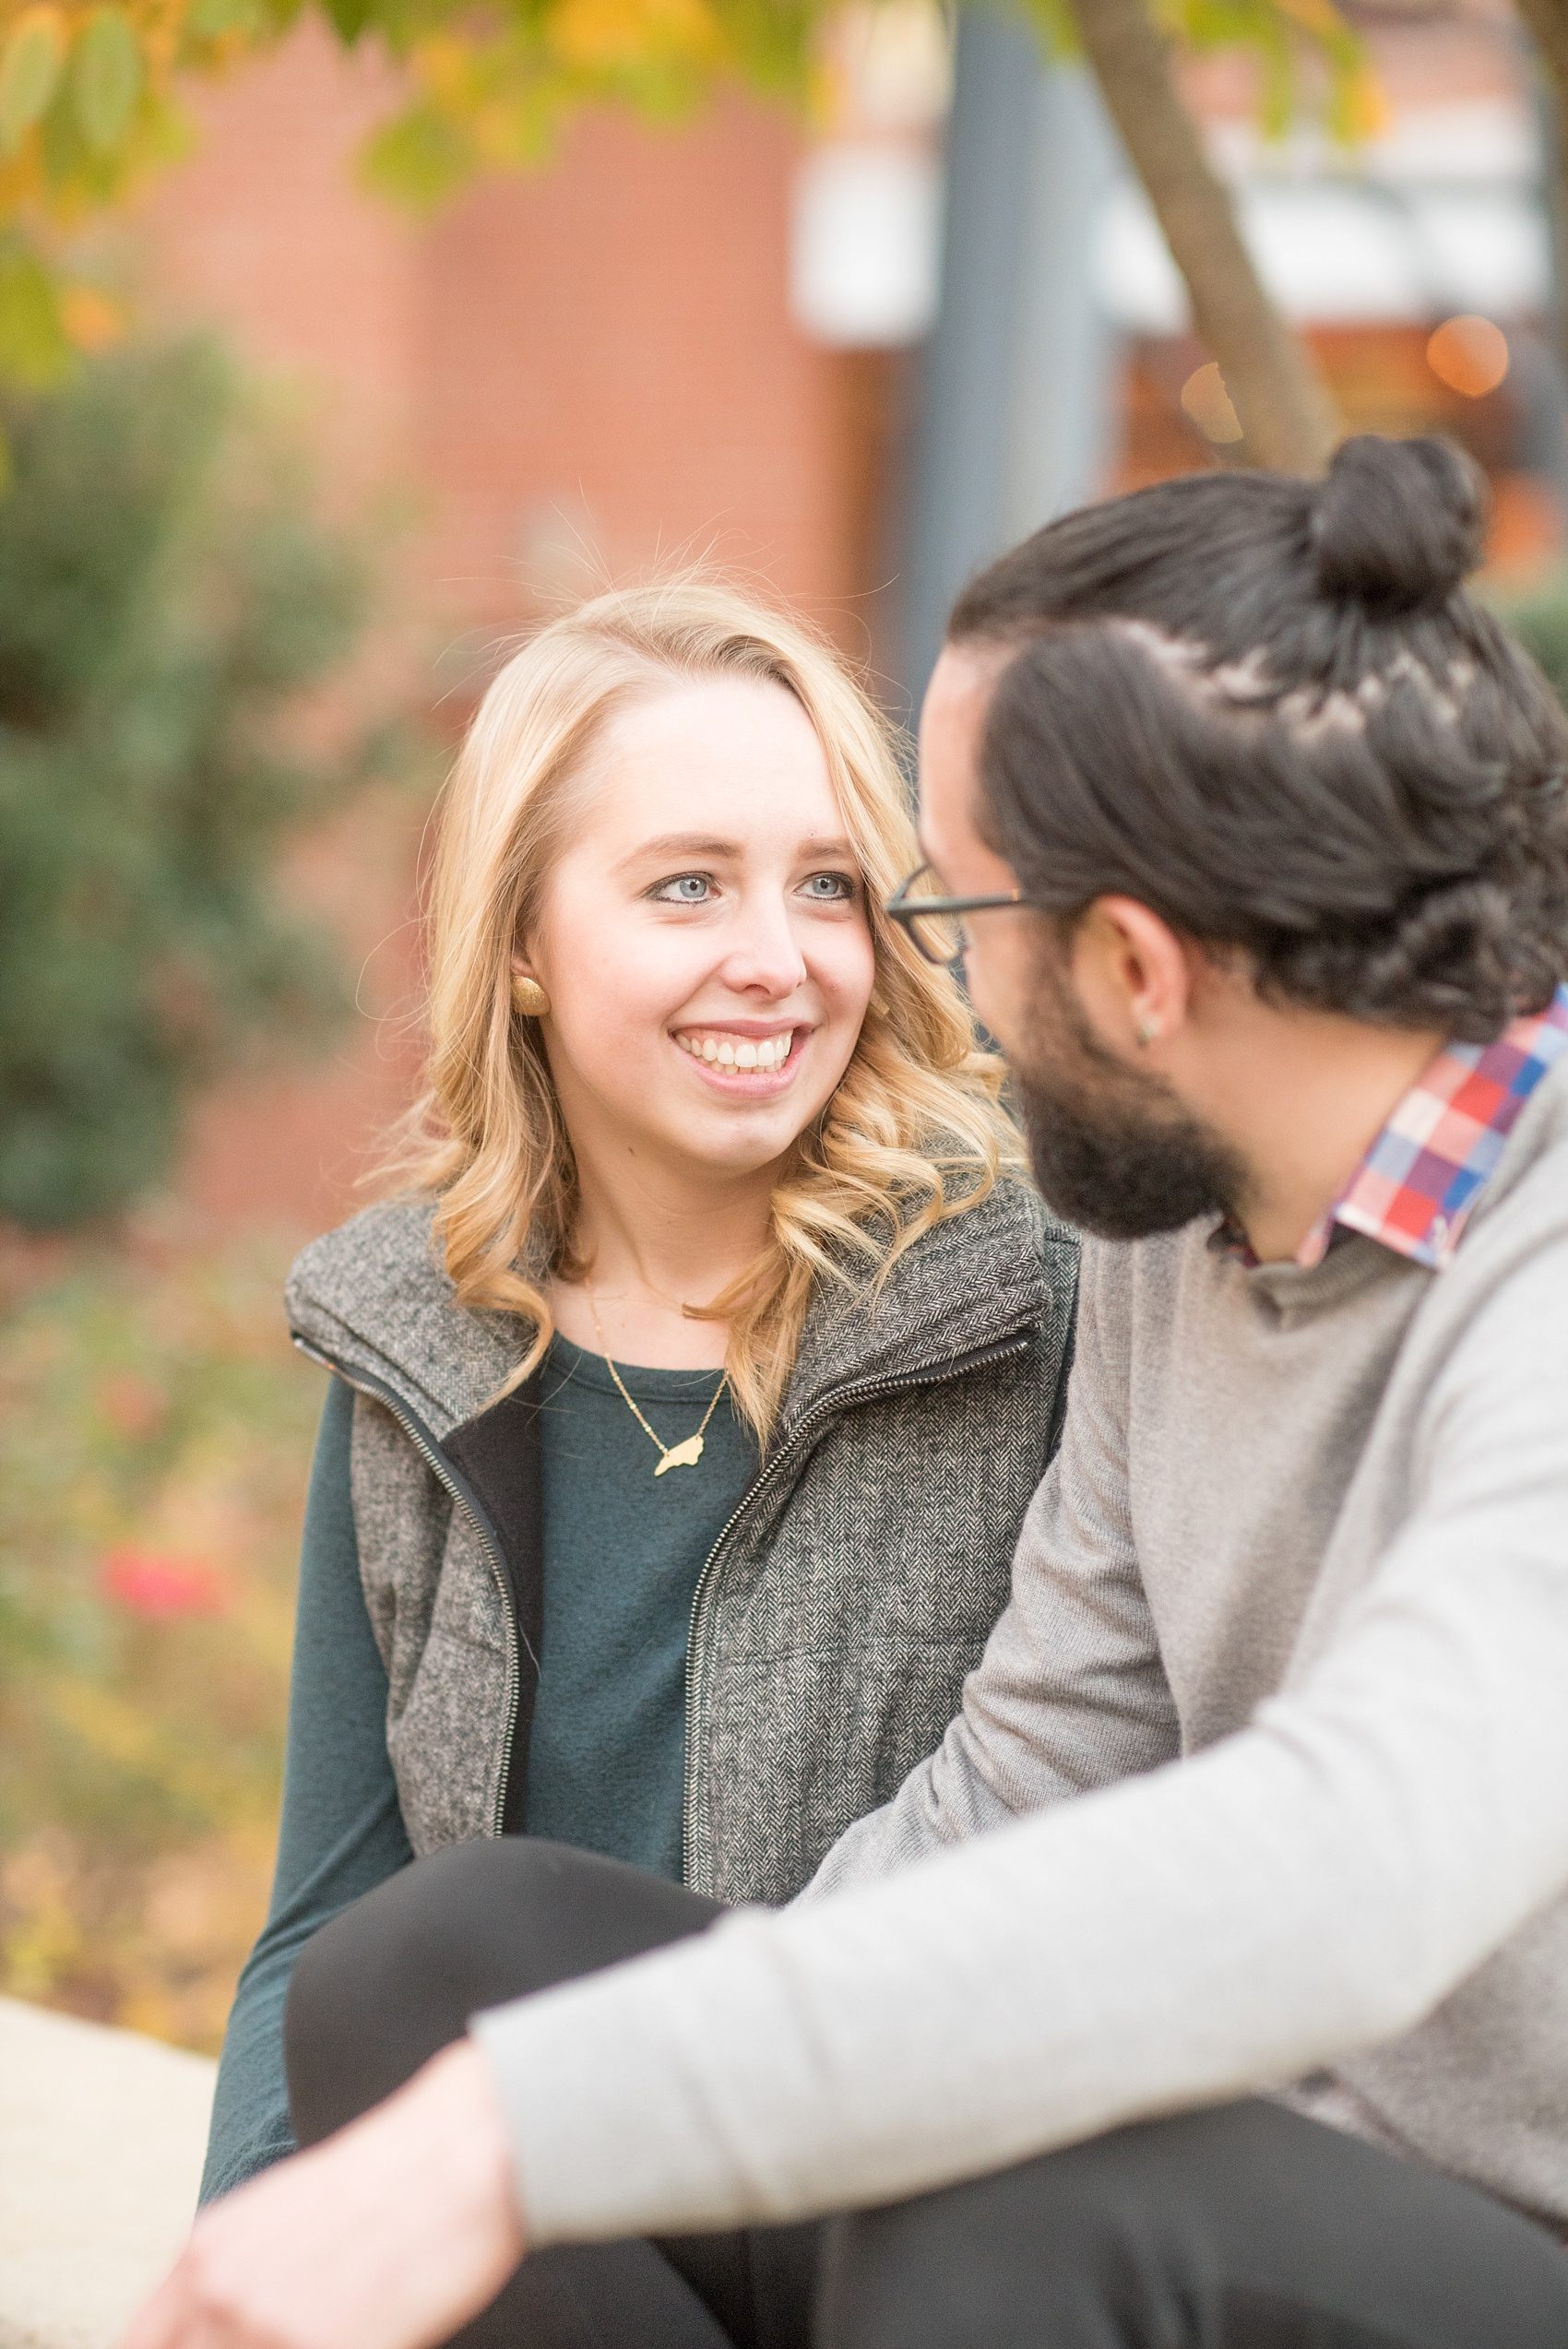 Mikkel Paige Photography photos of a Durham engagement session at American Tobacco Campus with fall leaves.